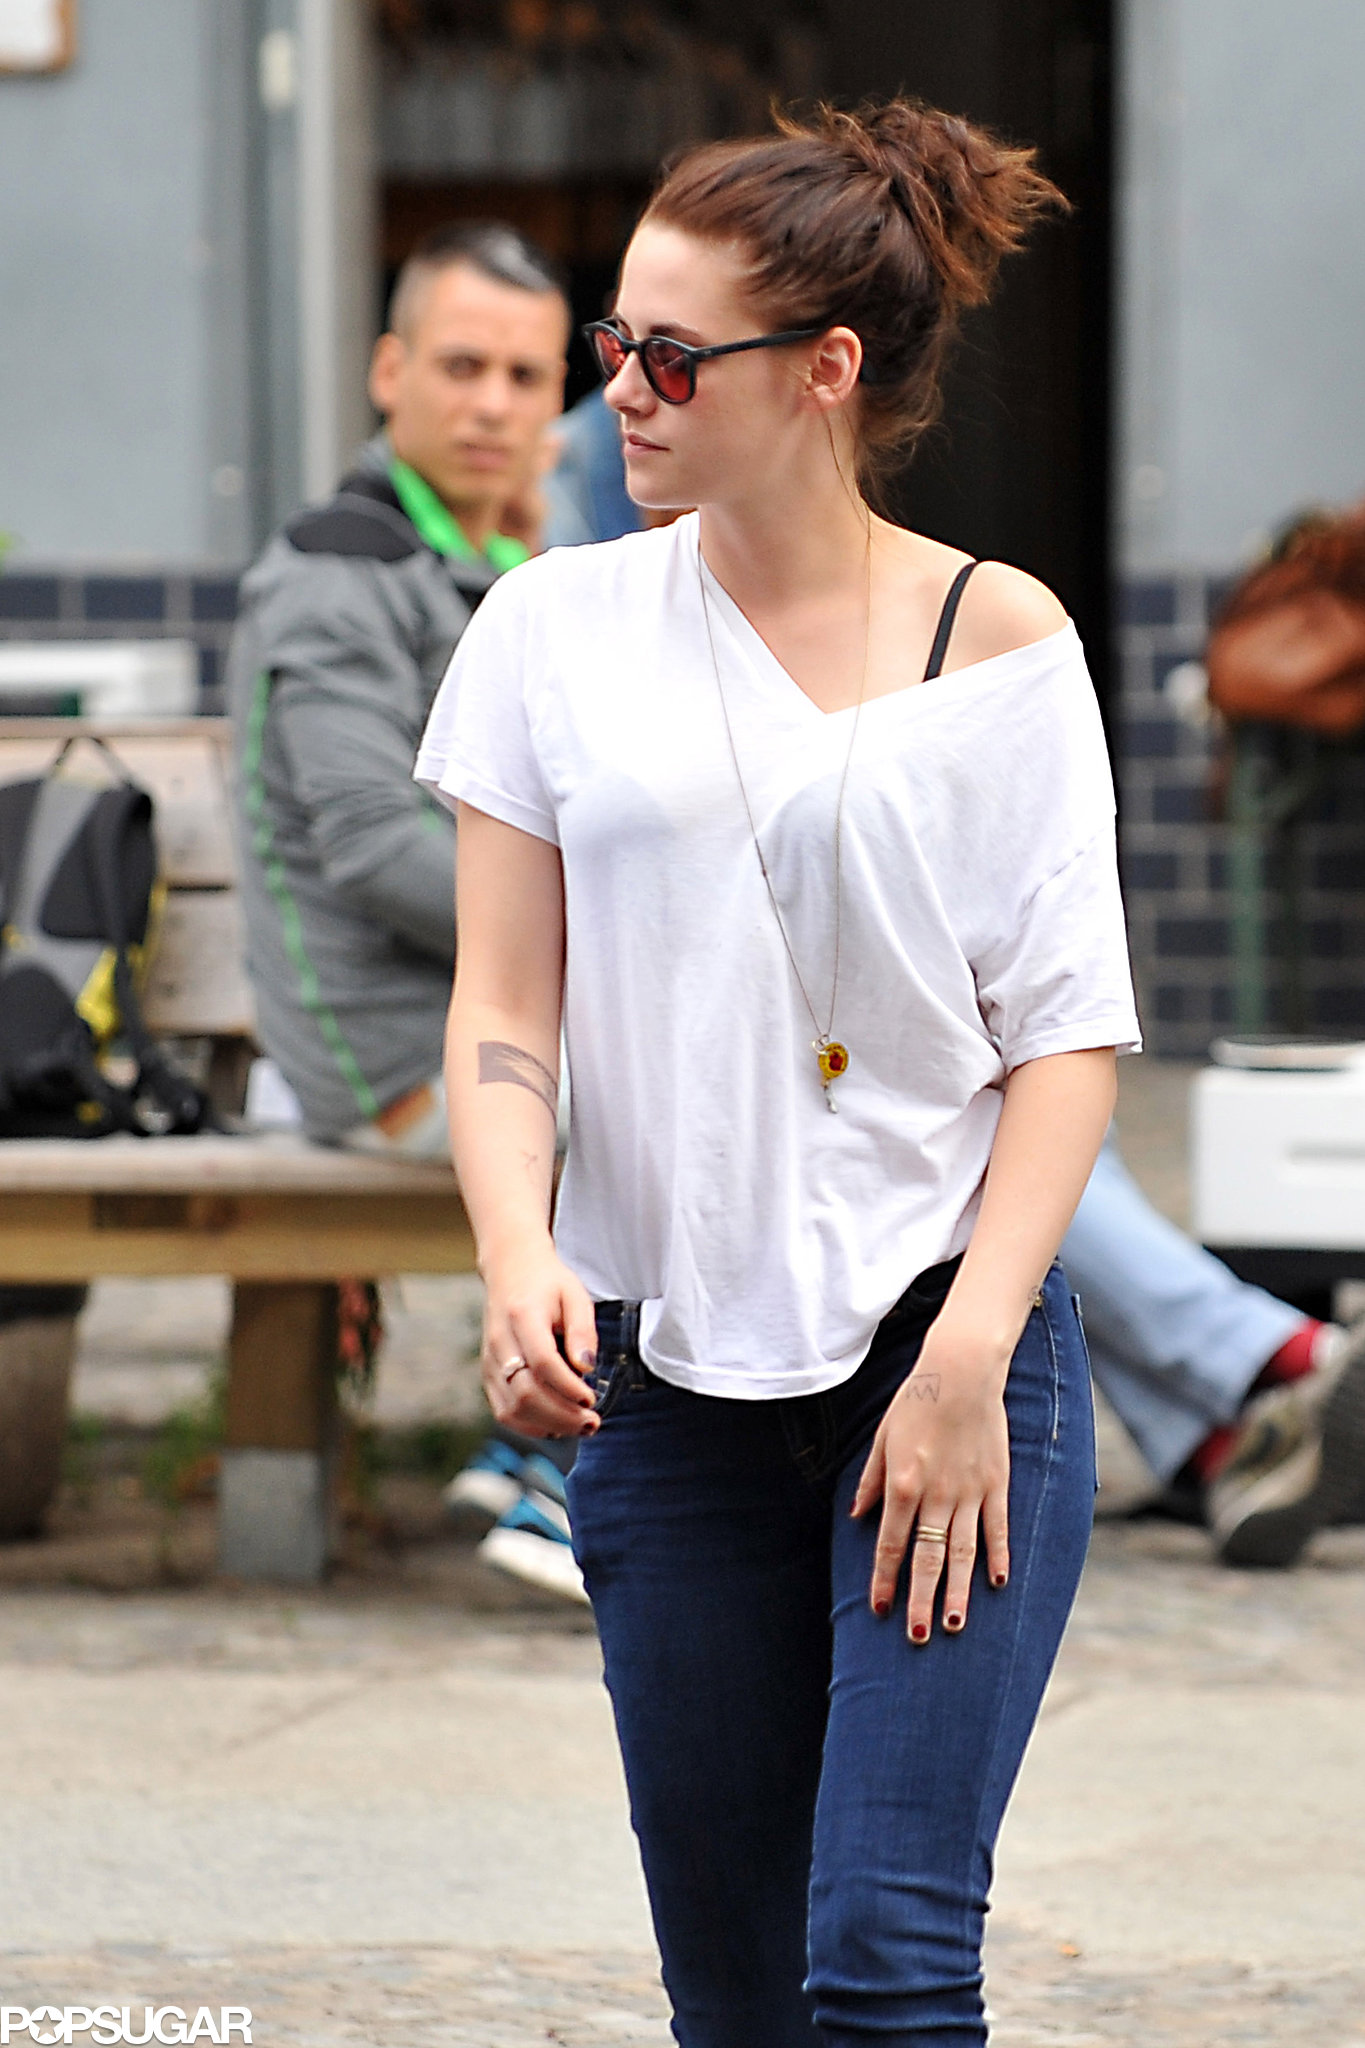 Kristen Stewart Showed Off Her New Tattoo While Out And